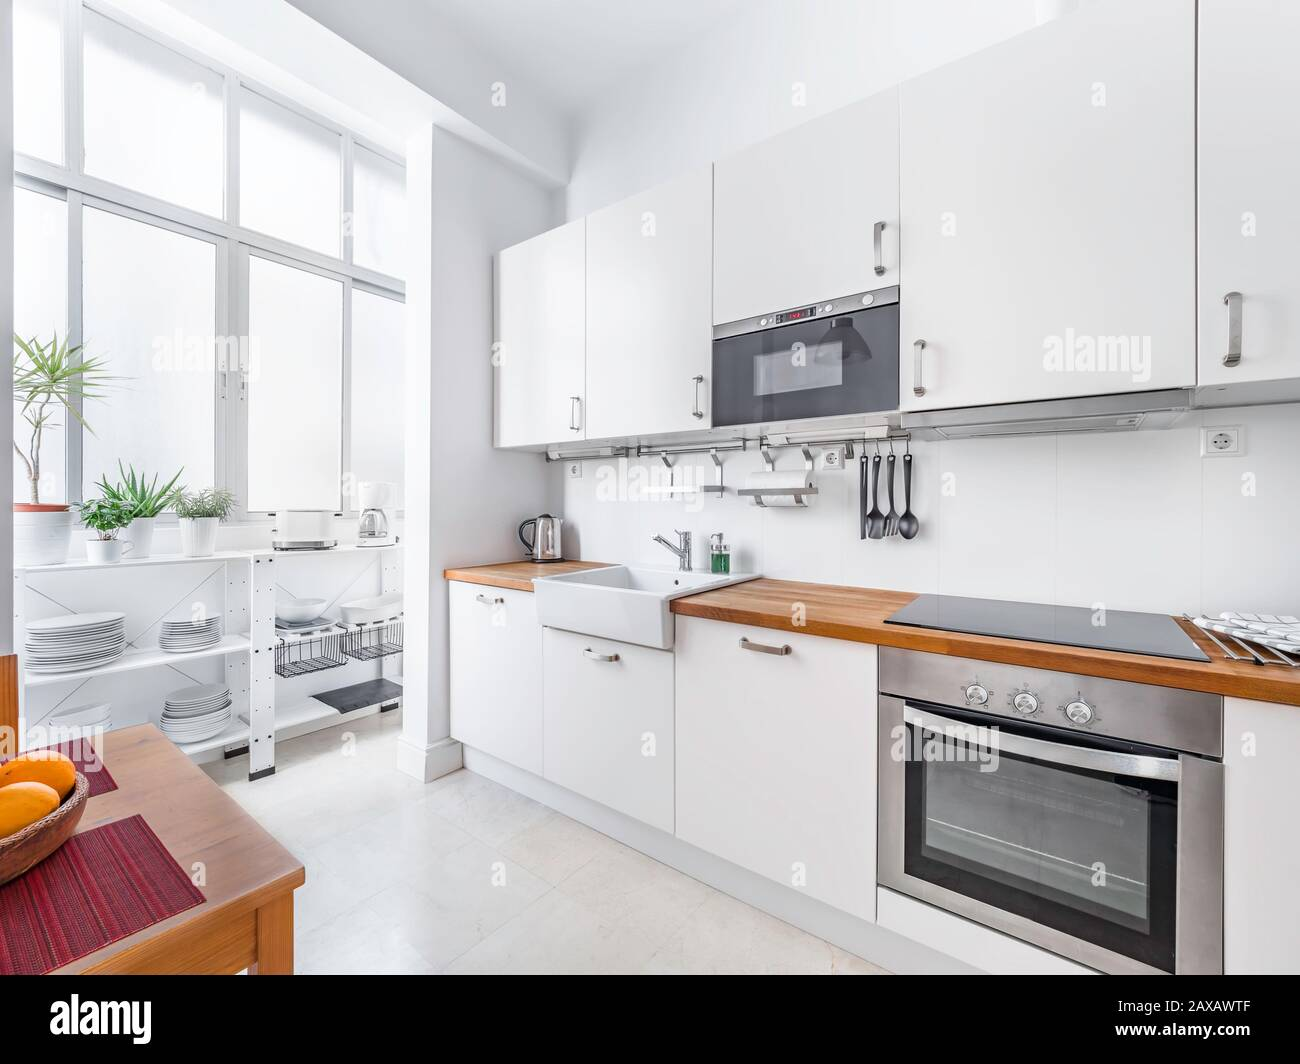 New Stylish Bright Kitchen With White Cabinets Spacious Modern Interior With Wooden Table Chairs Picture Frame And Big Windows Stock Photo Alamy